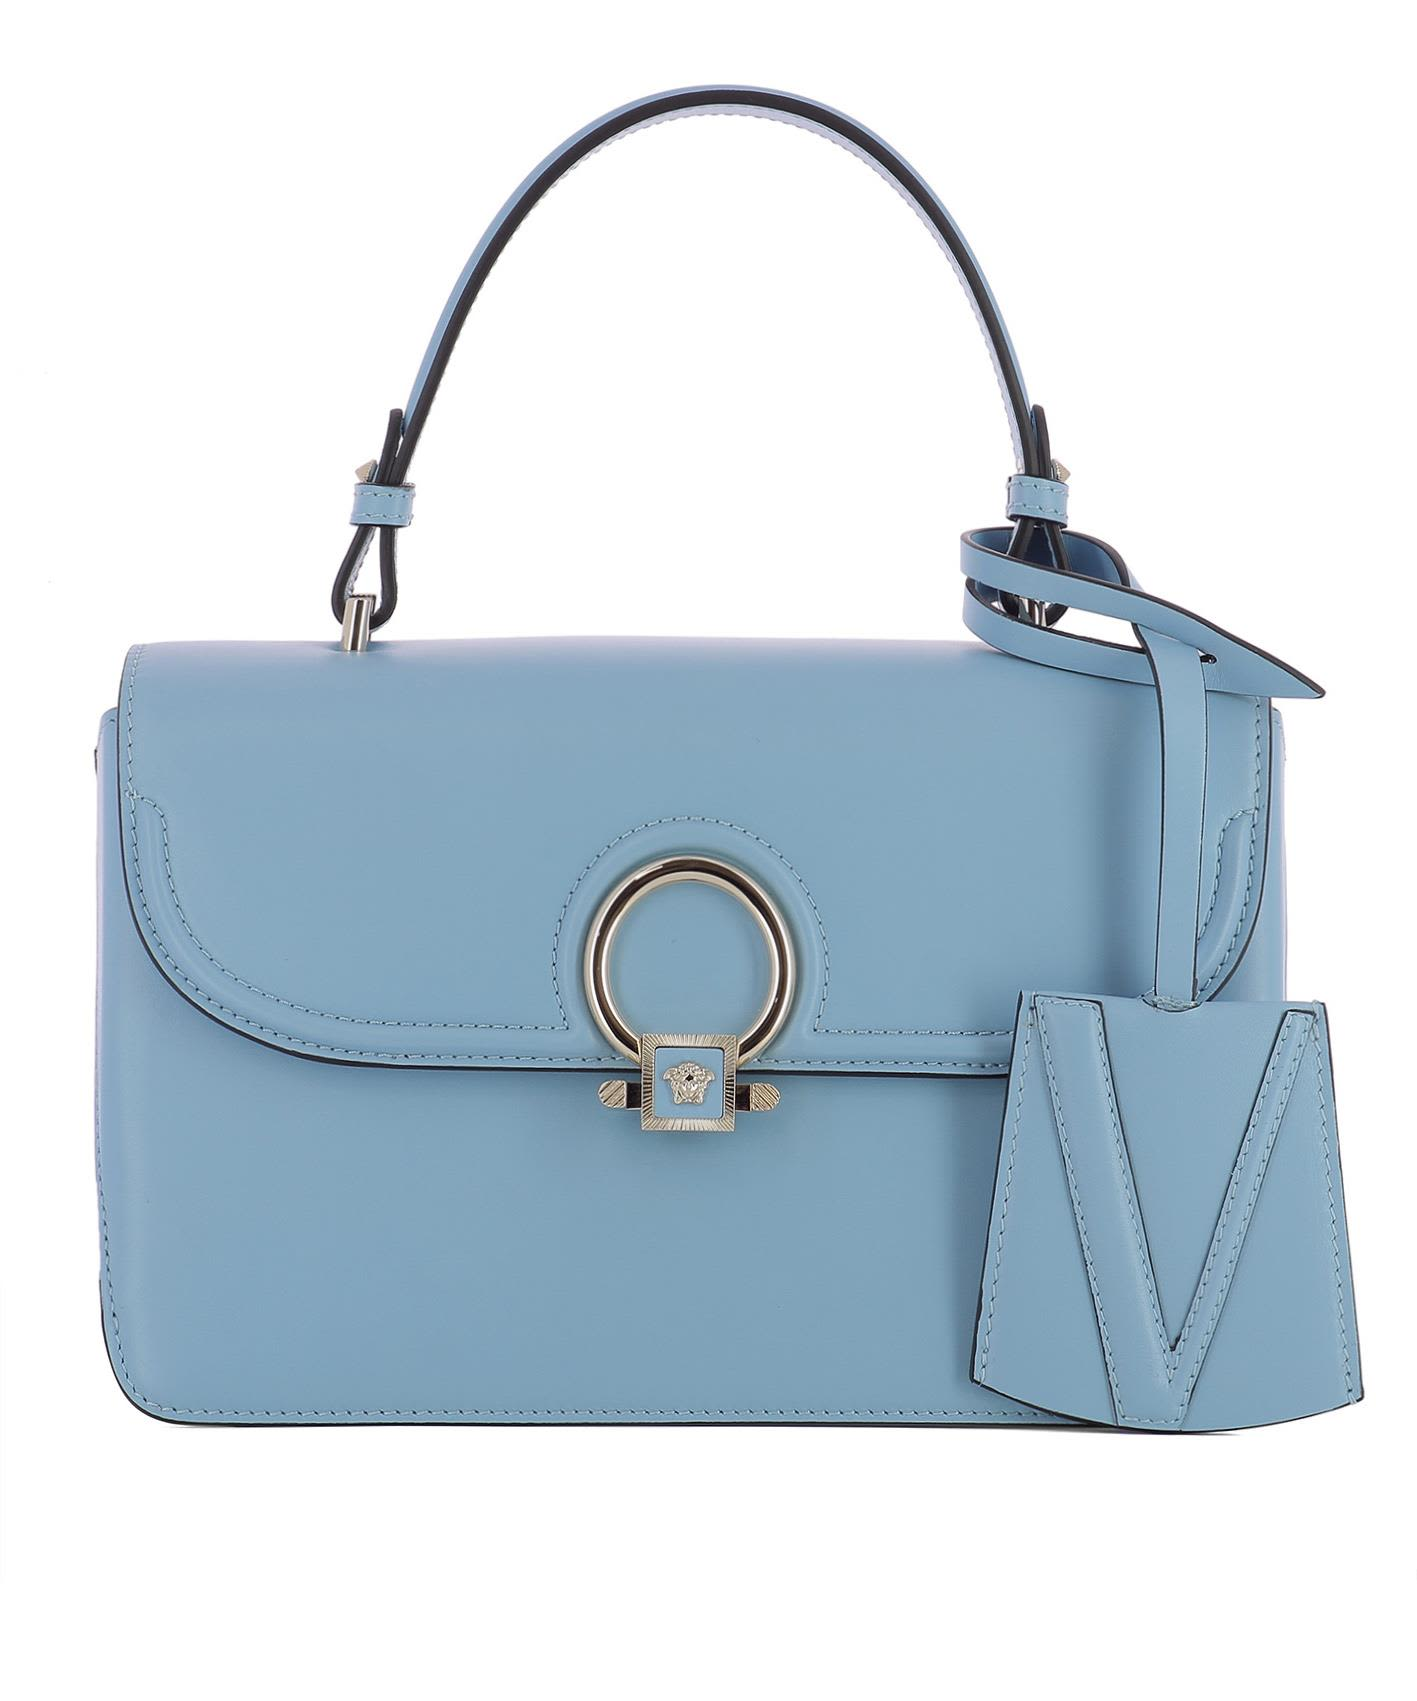 Italist best price in the market for versace light blue leather jpg  1417x1701 Versace light blue fbd1745fd55e5